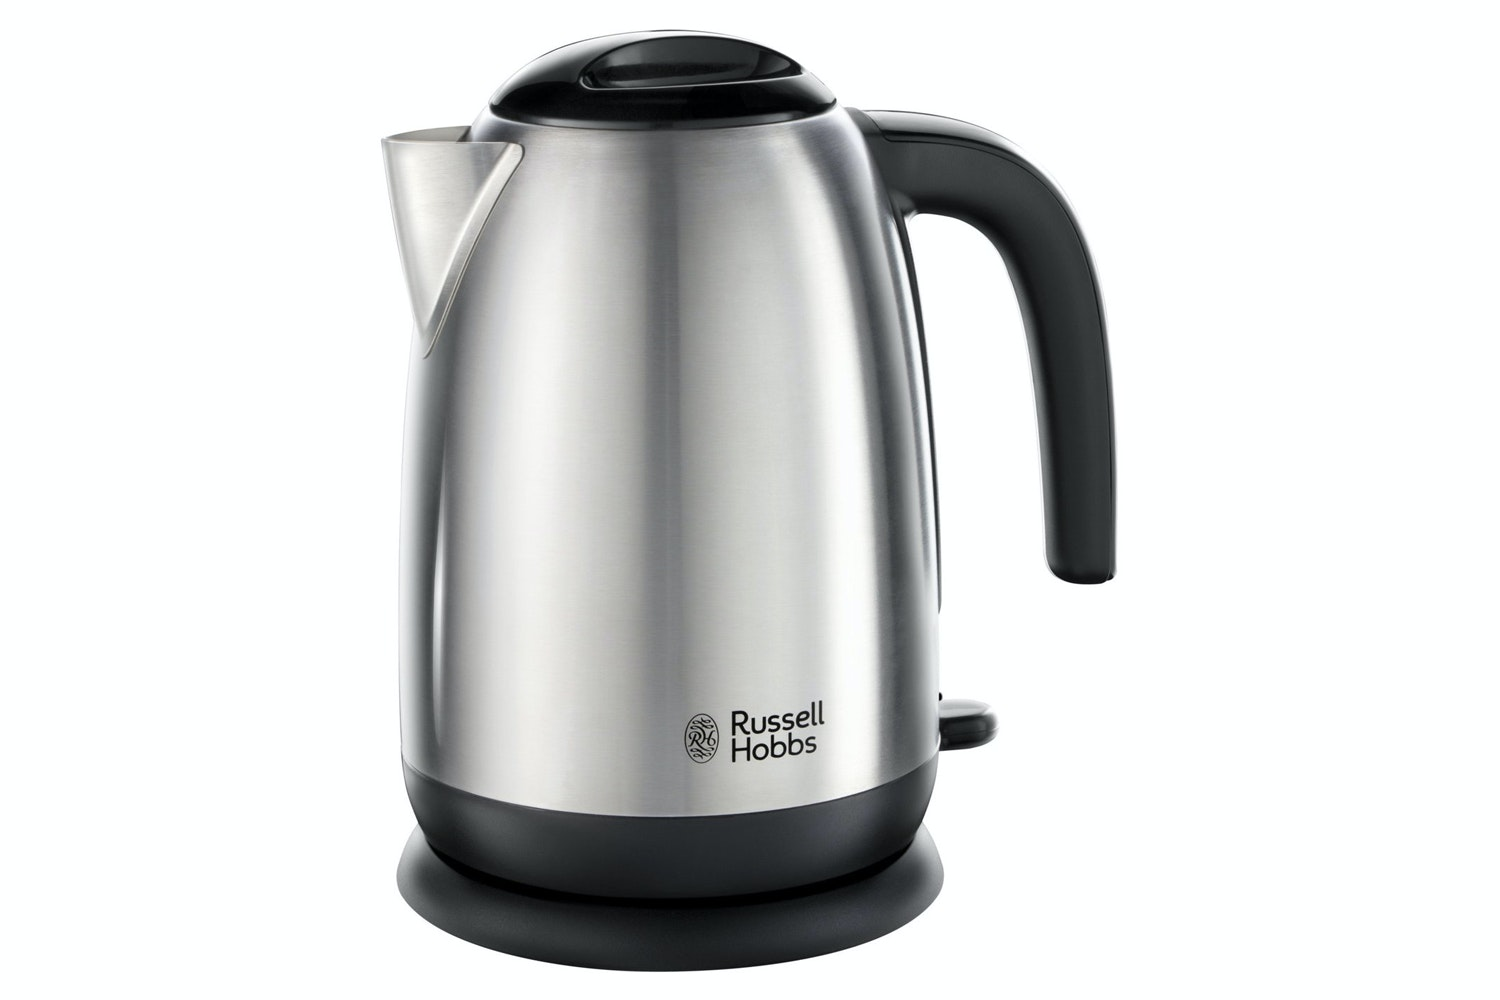 Russell Hobbs Adventure Rapid Boil Jug Kettle | Stainless Steel